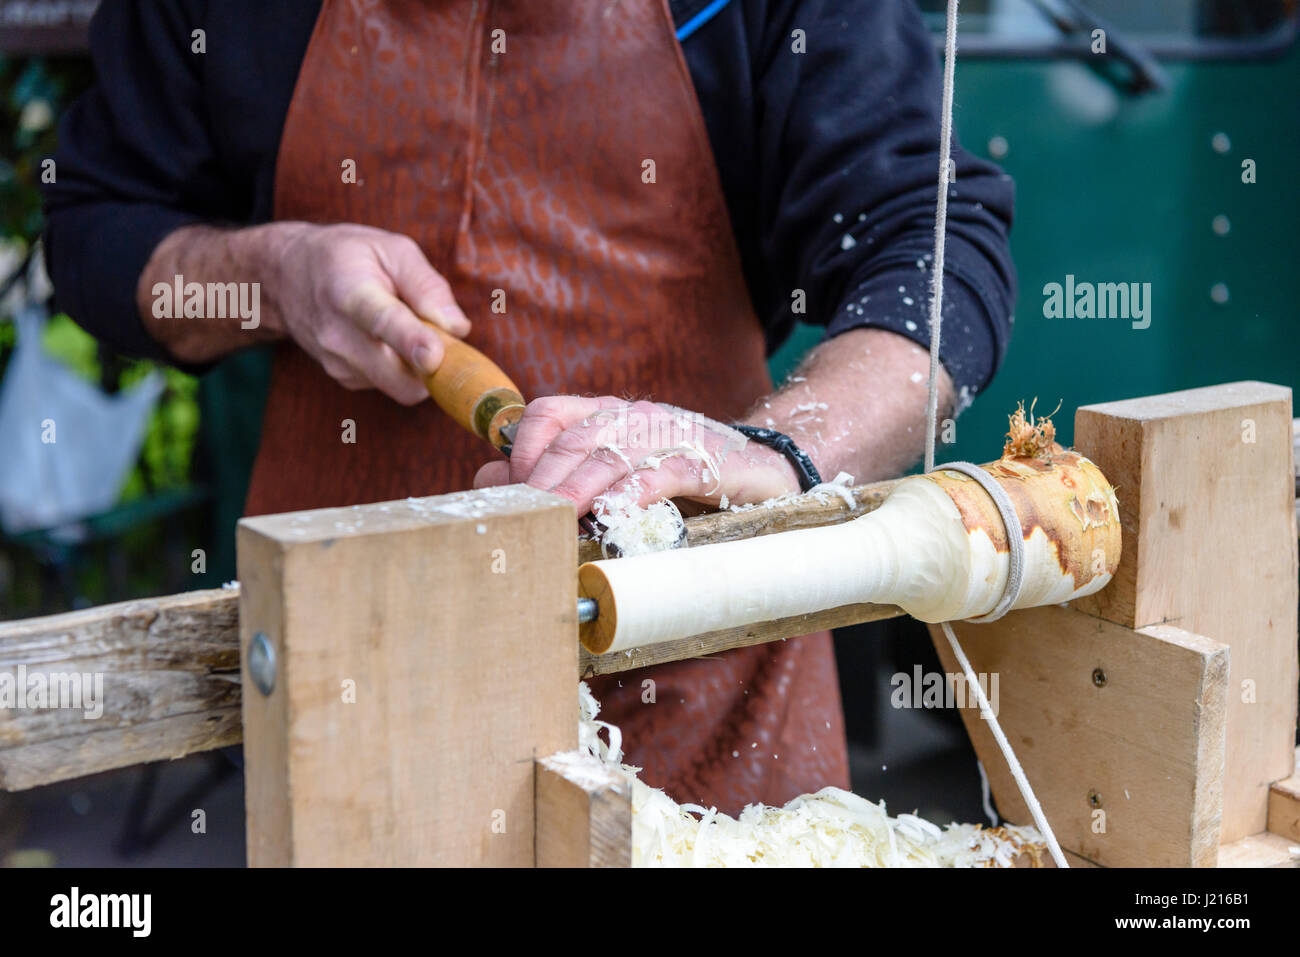 A man uses a traditional foot-operated wood turning lathe. - Stock Image